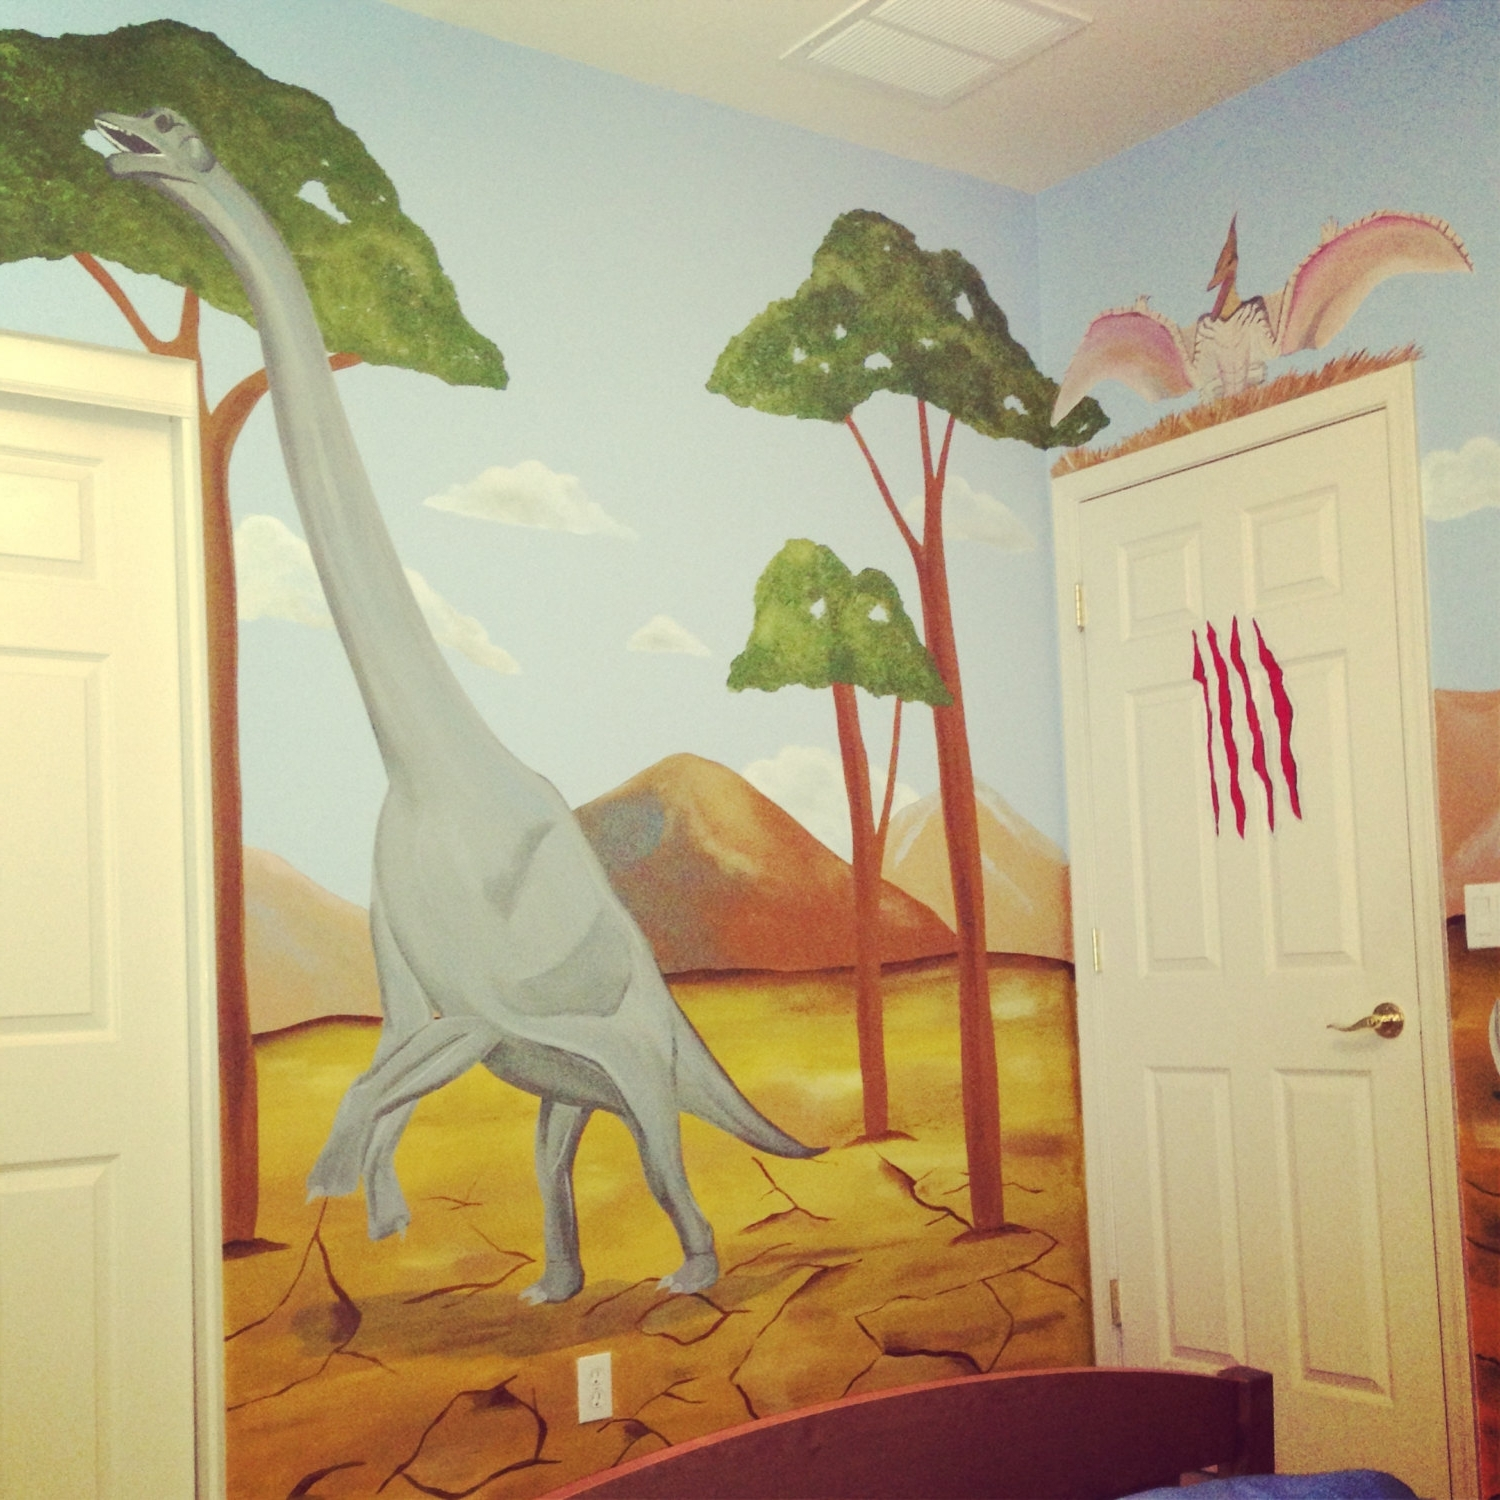 3D Dinosaur Wall Decals Bedroom Stickers Beetling Design Boys For Well  Known Beetling Brachiosaurus Dinosaur 3D